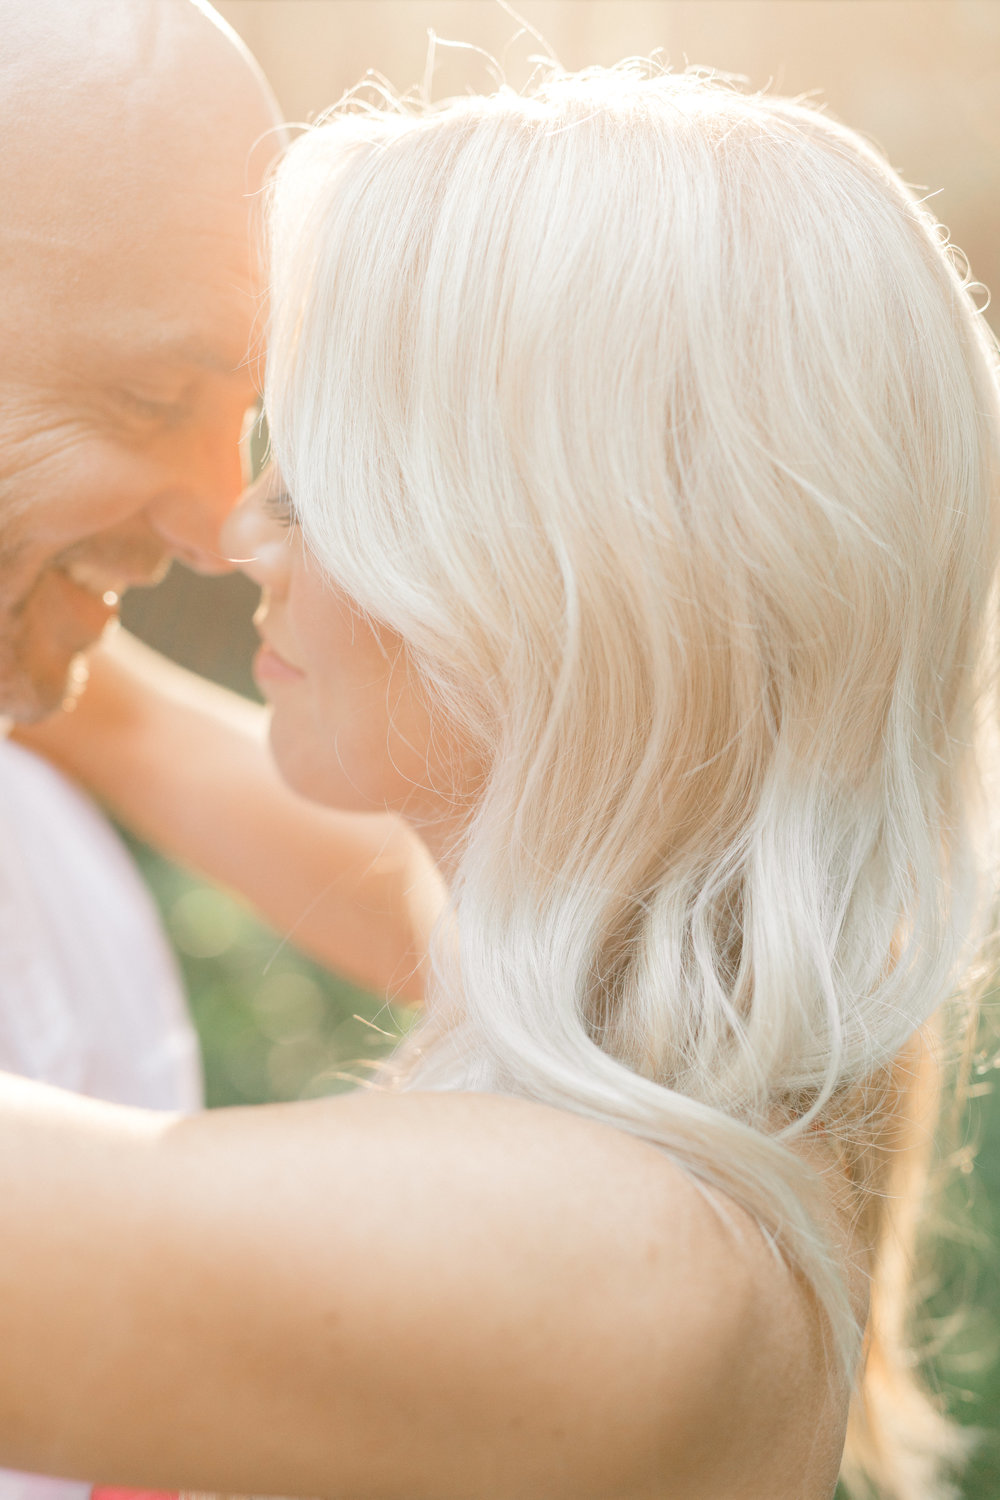 Liz's platinum blonde hair was absolutely glowing in the sunset for their romantic woodland engagement session at Parque at Ridley Creek.